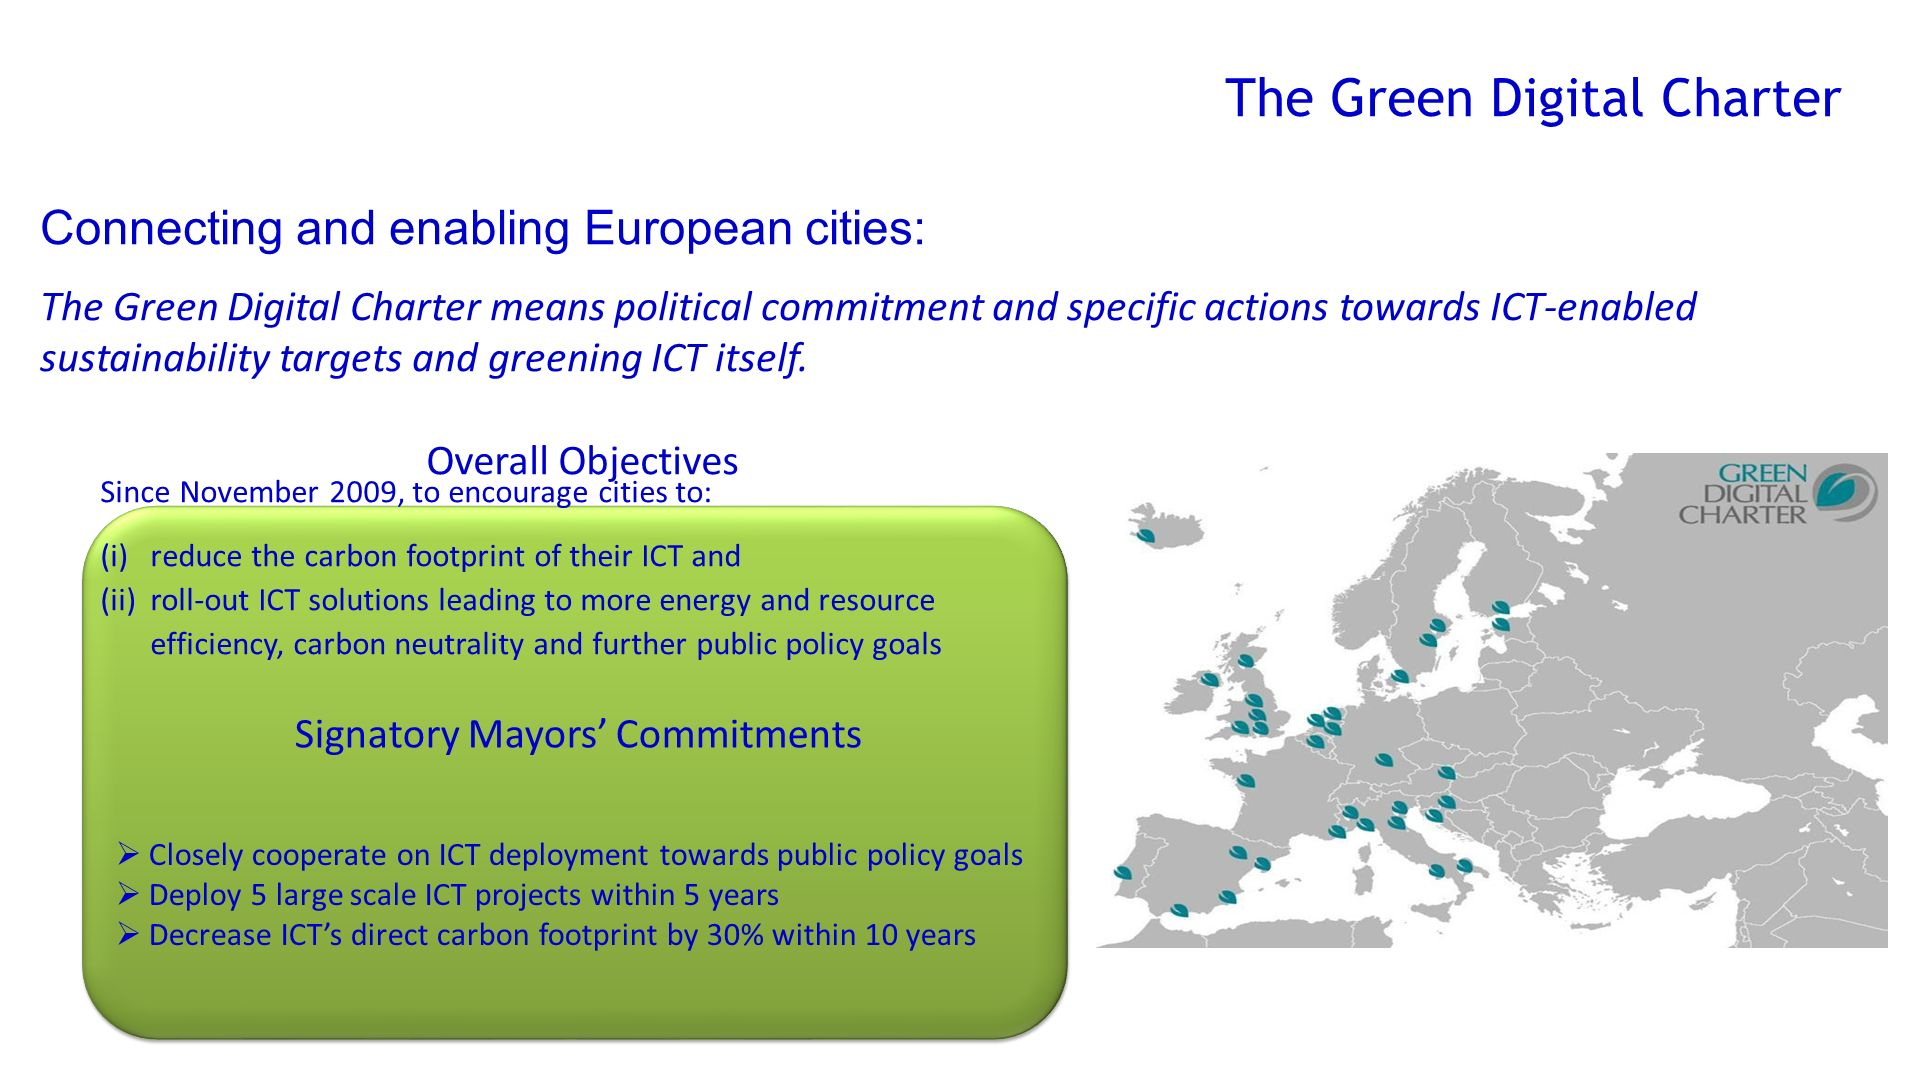 Connecting and enabling European cities: The Green Digital Charter means political commitment and specific actions towards ICT-enabled sustainability targets and greening ICT itself.